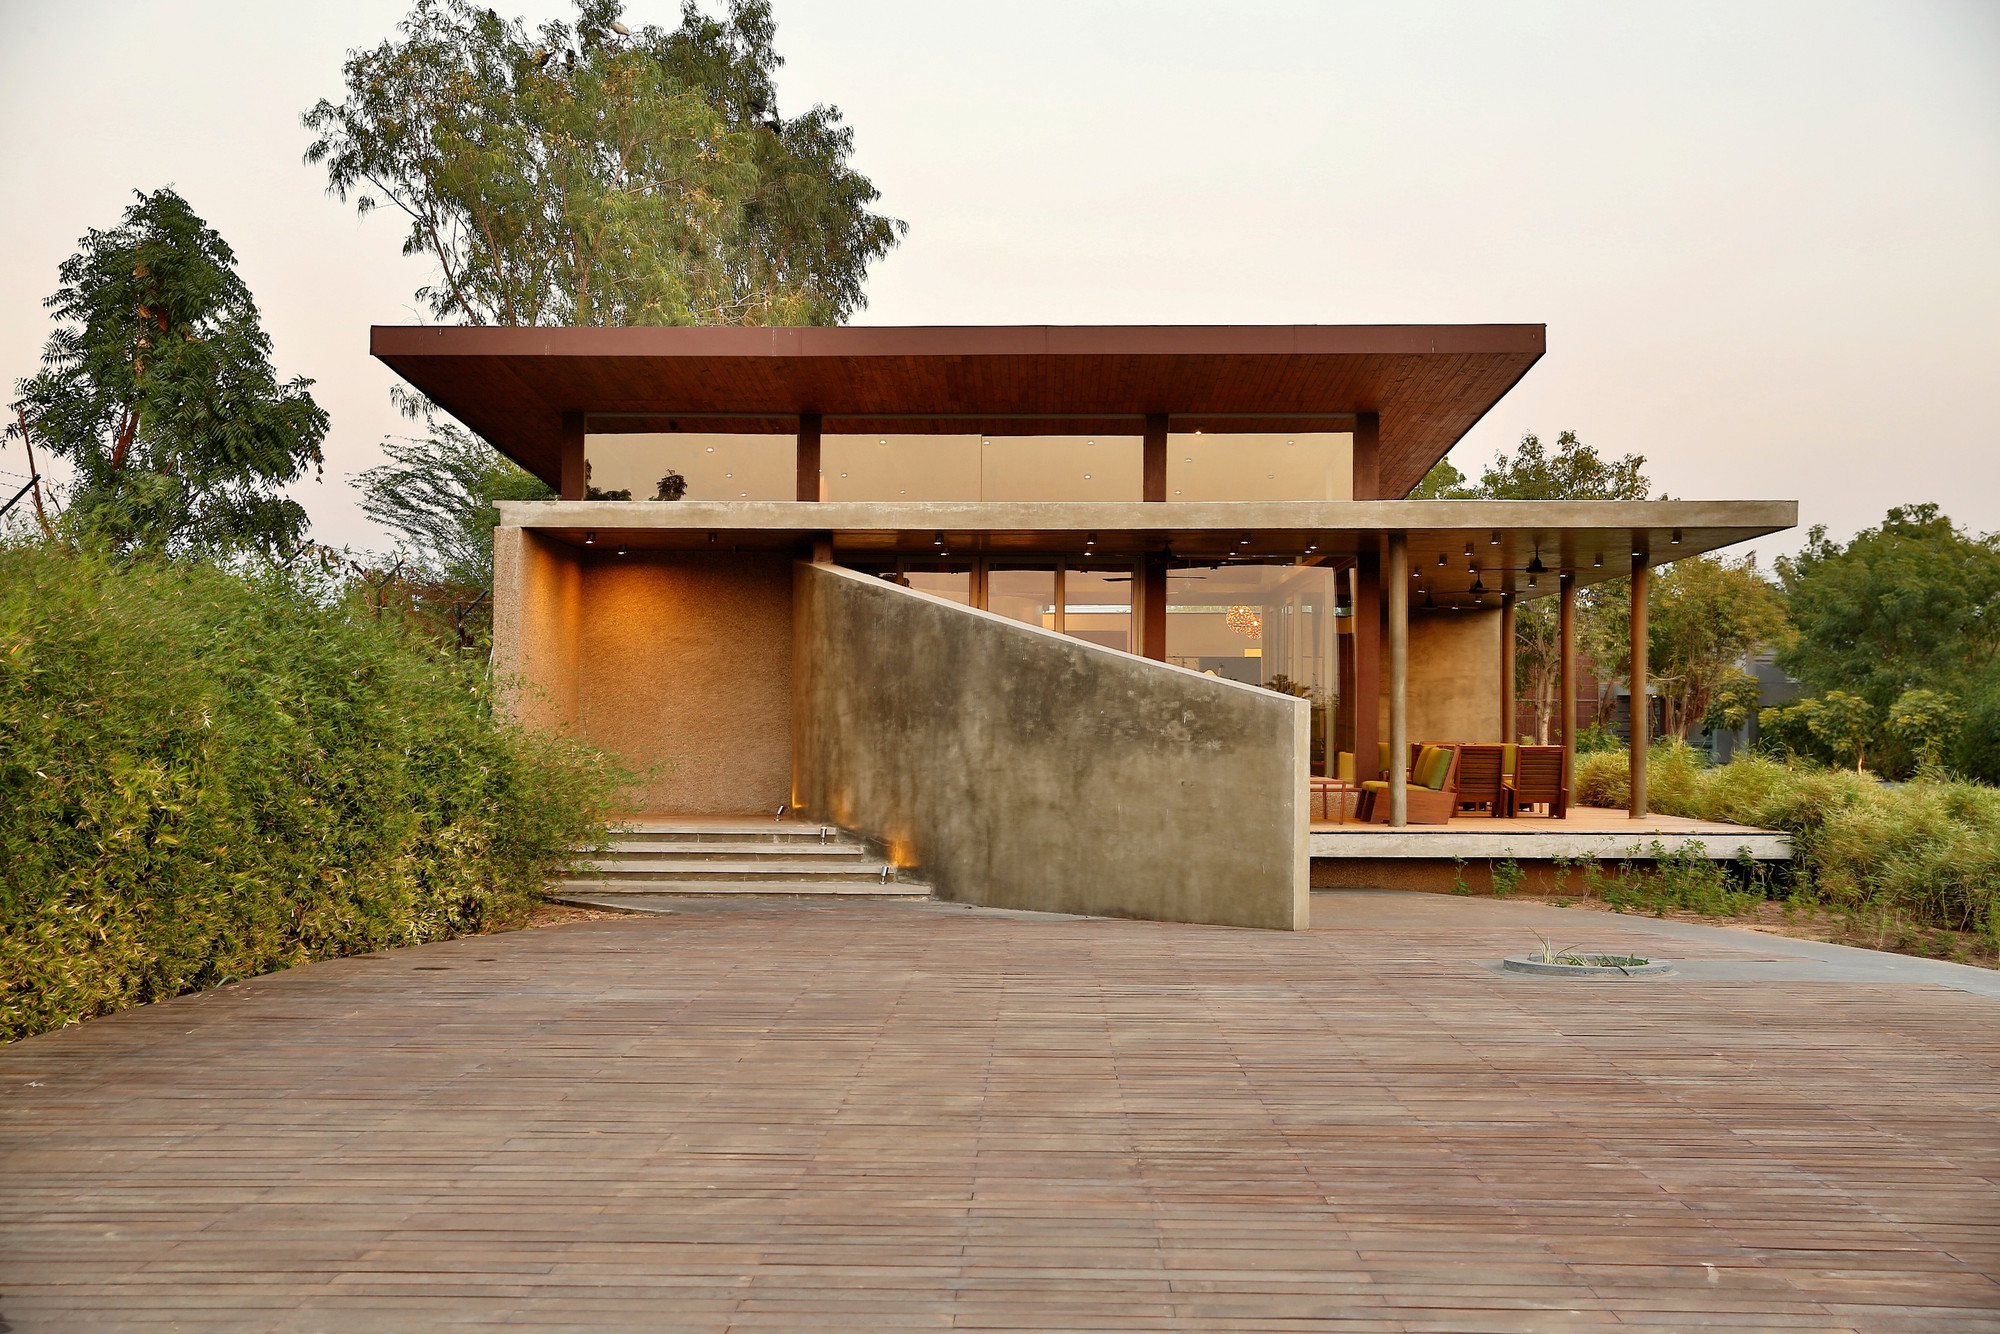 Visitors Entrance Pavilion at Glade One / Khosla Associates, © Jignesh Vishwanath